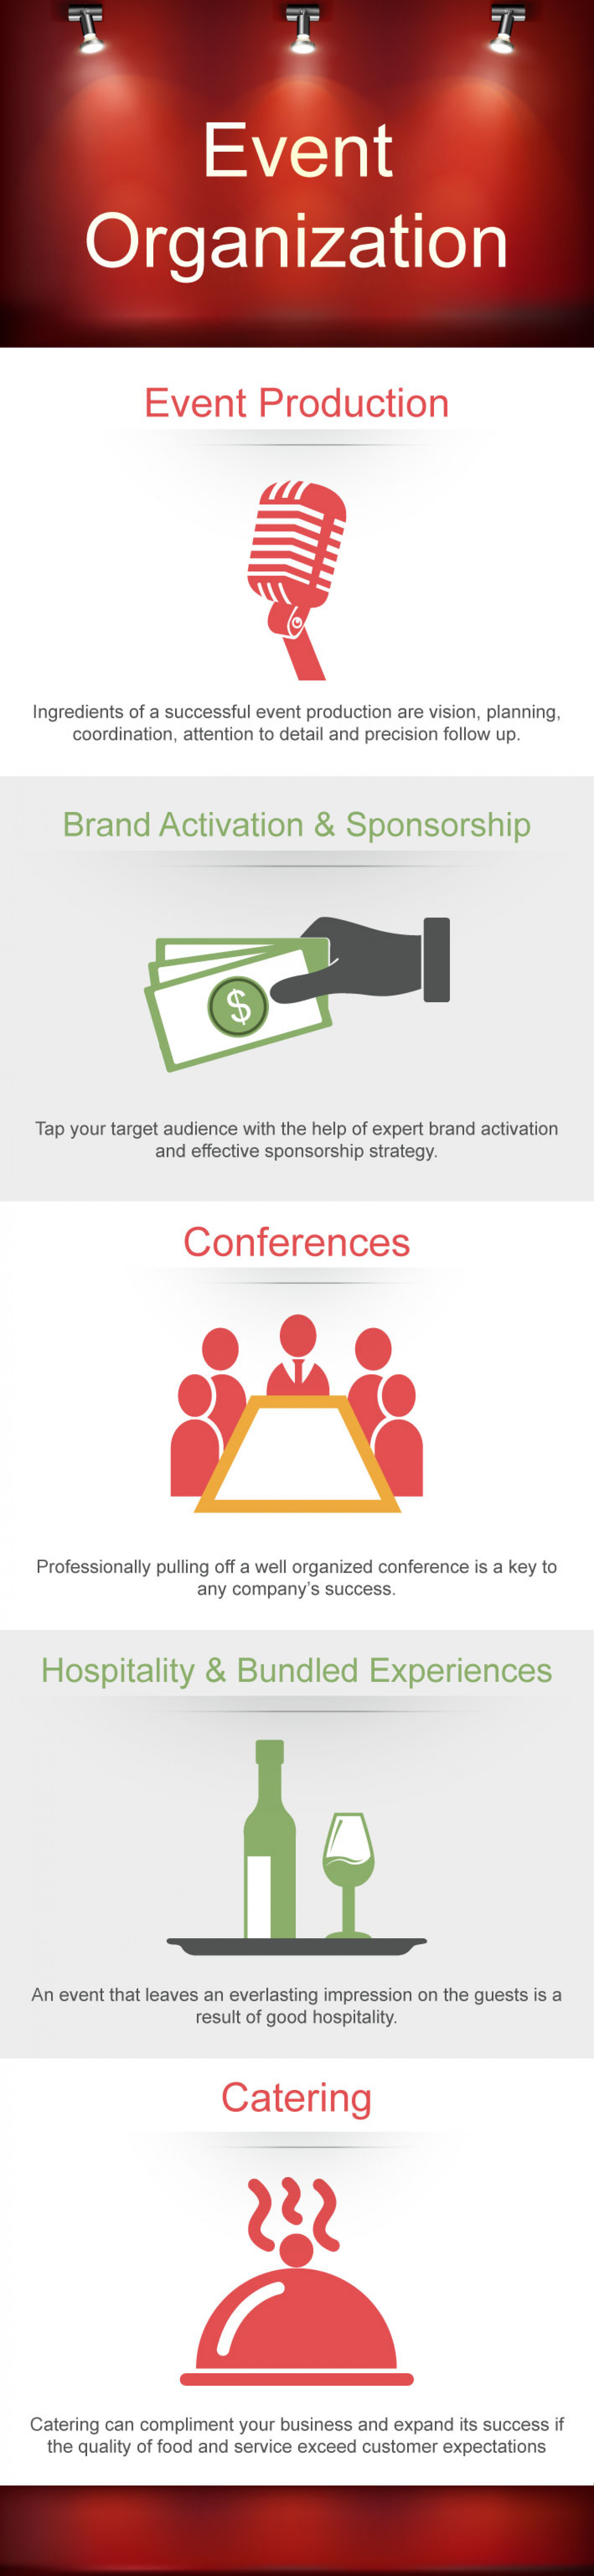 Event Organisation Infographic